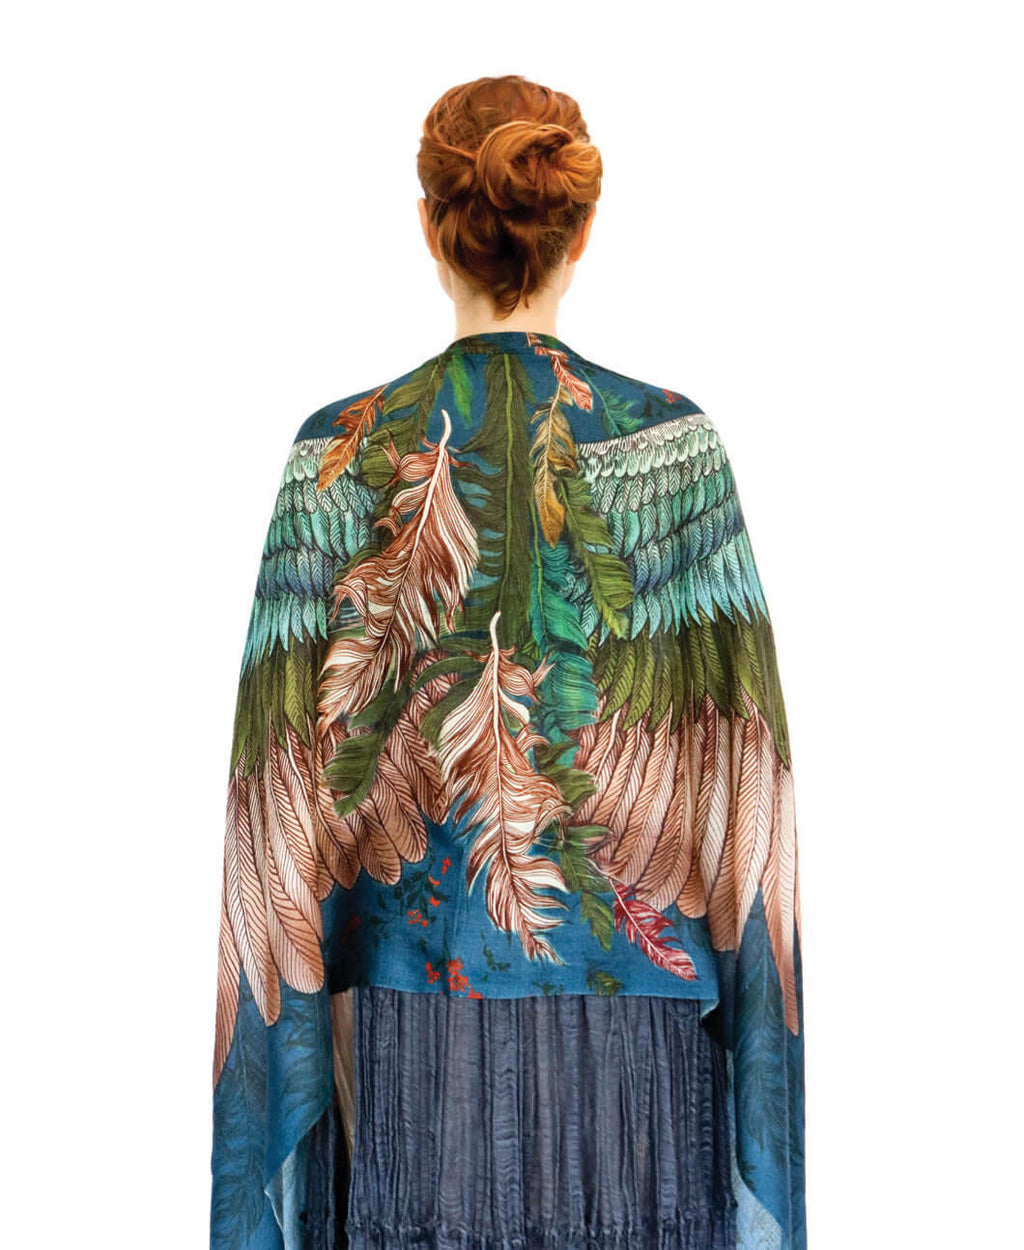 Jasper wide spread wings scarf